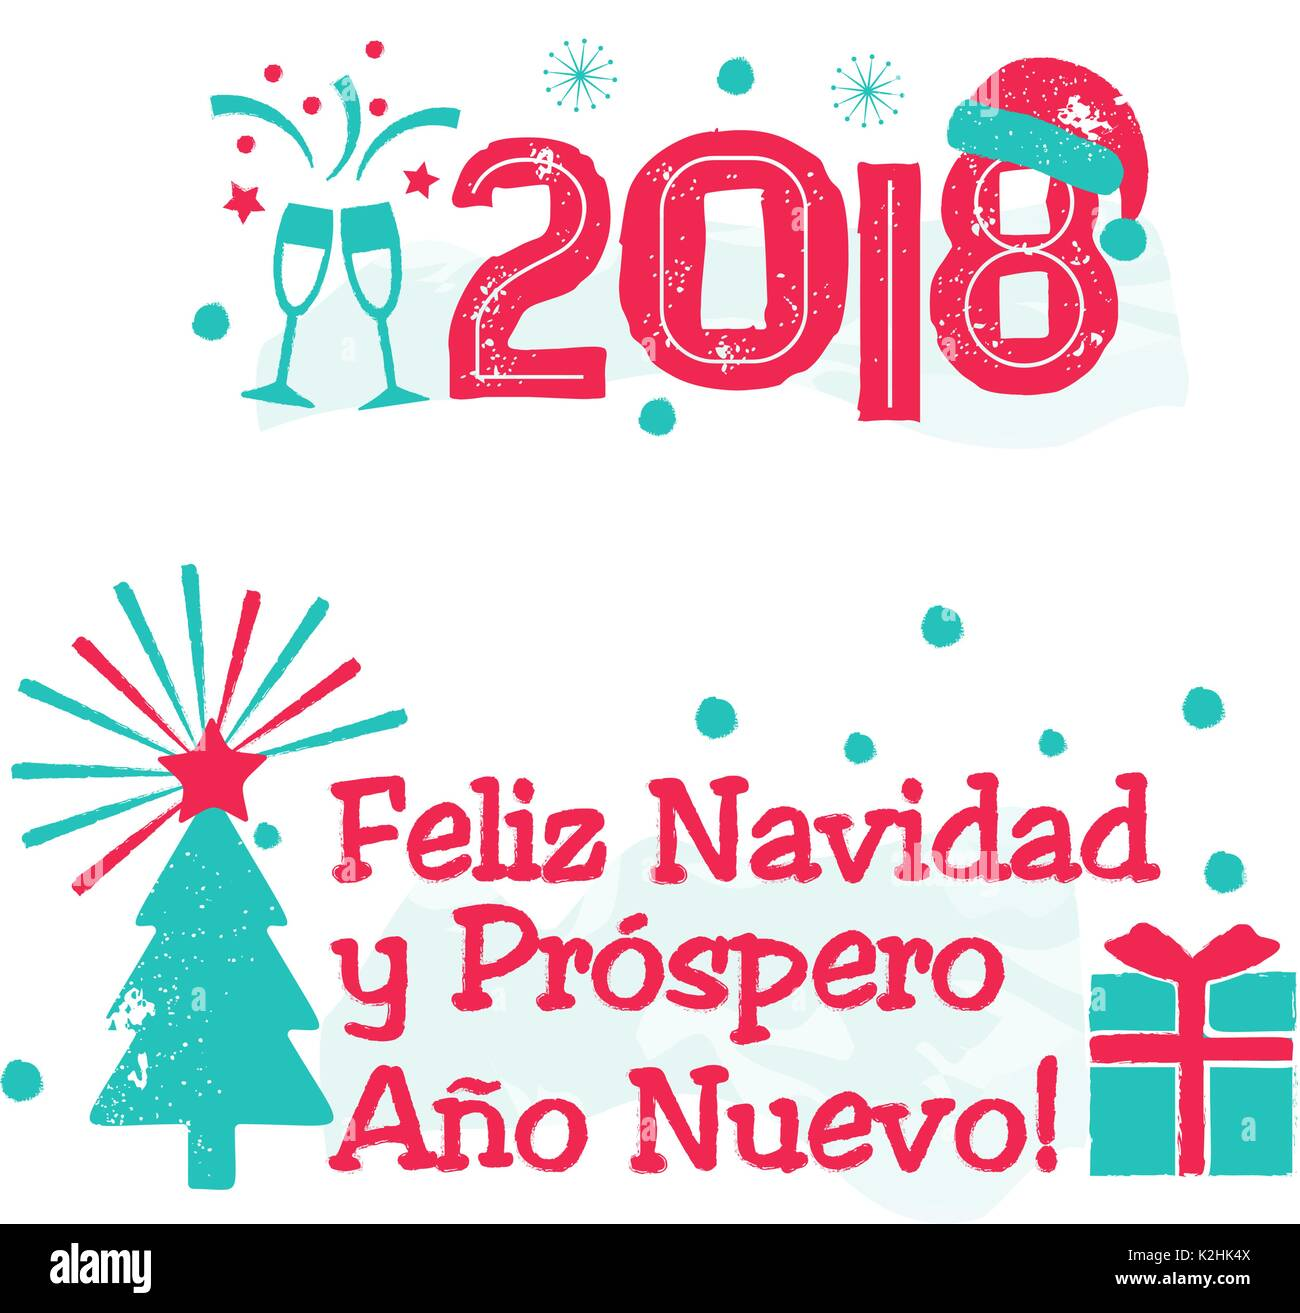 feliz navidad merry christmas spanish language stock image